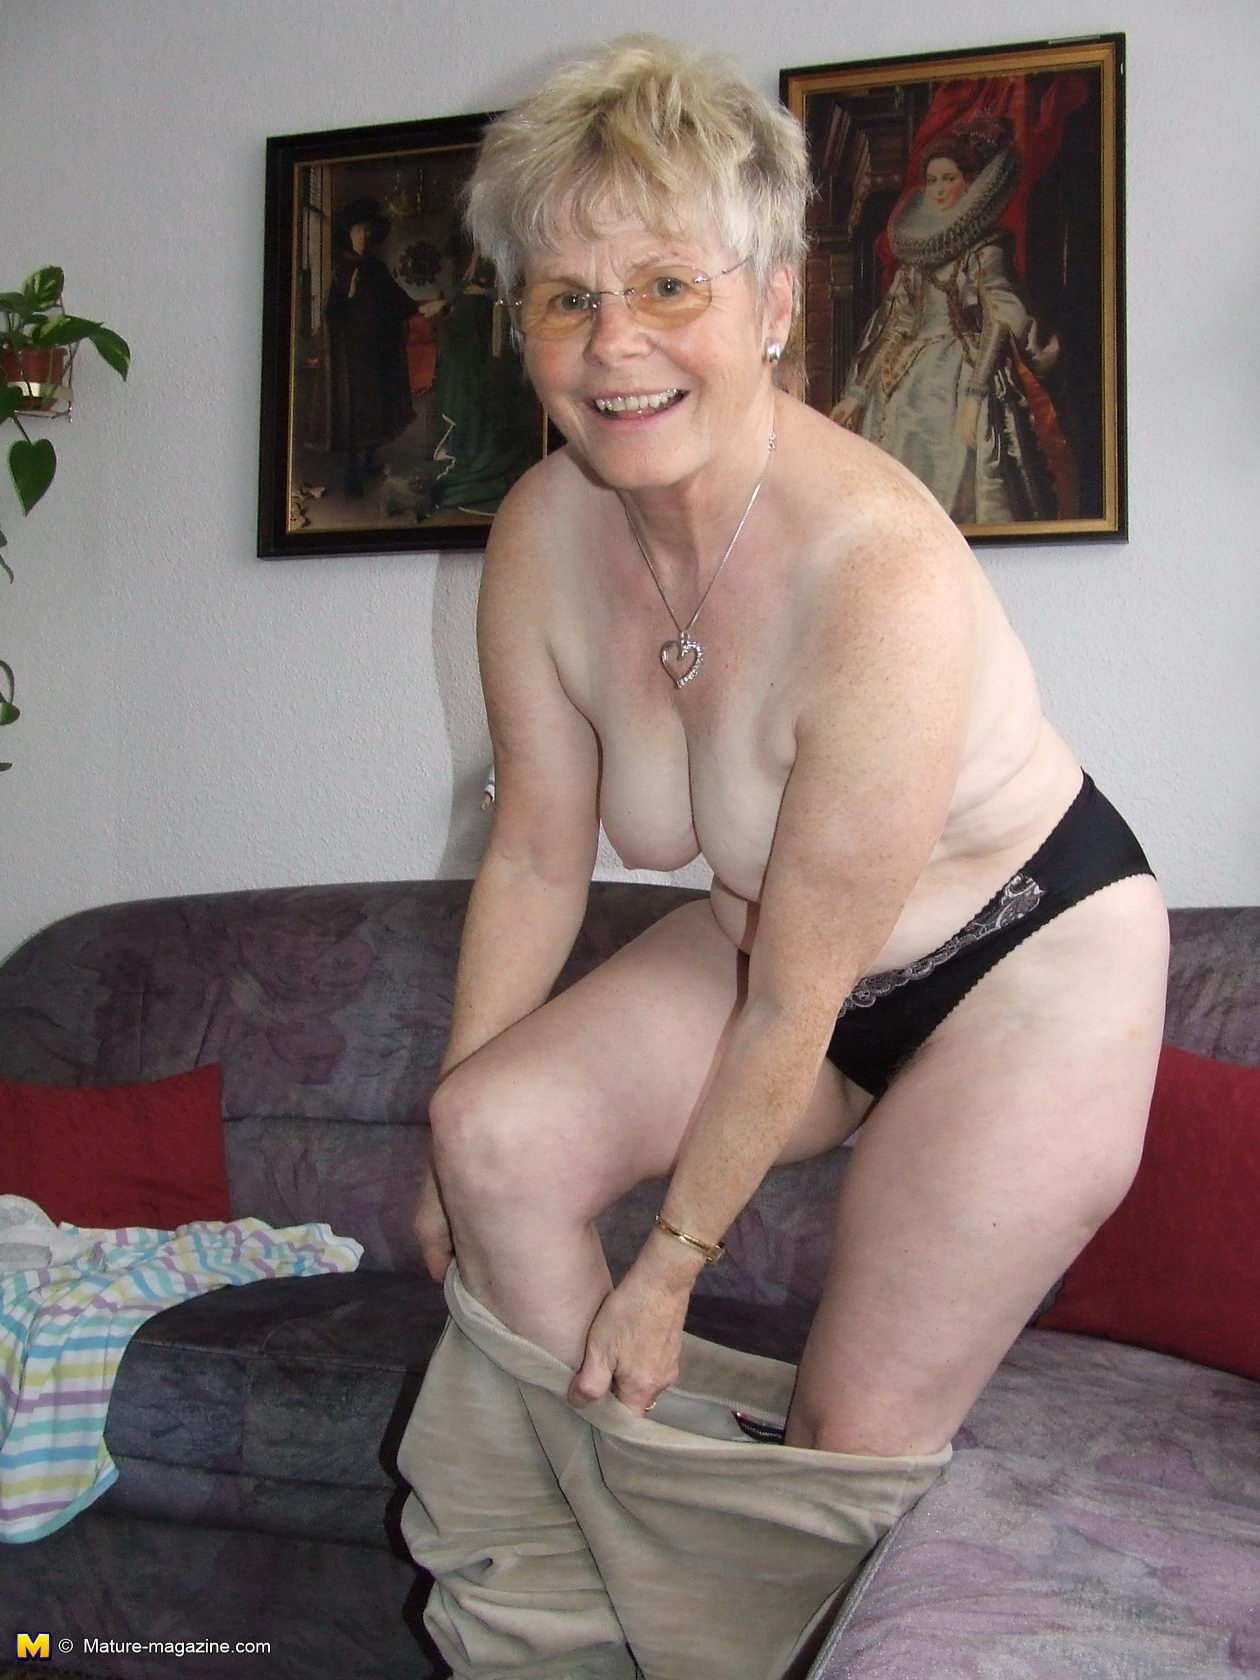 Naughty Older Lady Showing Off Her Naked Body Picture